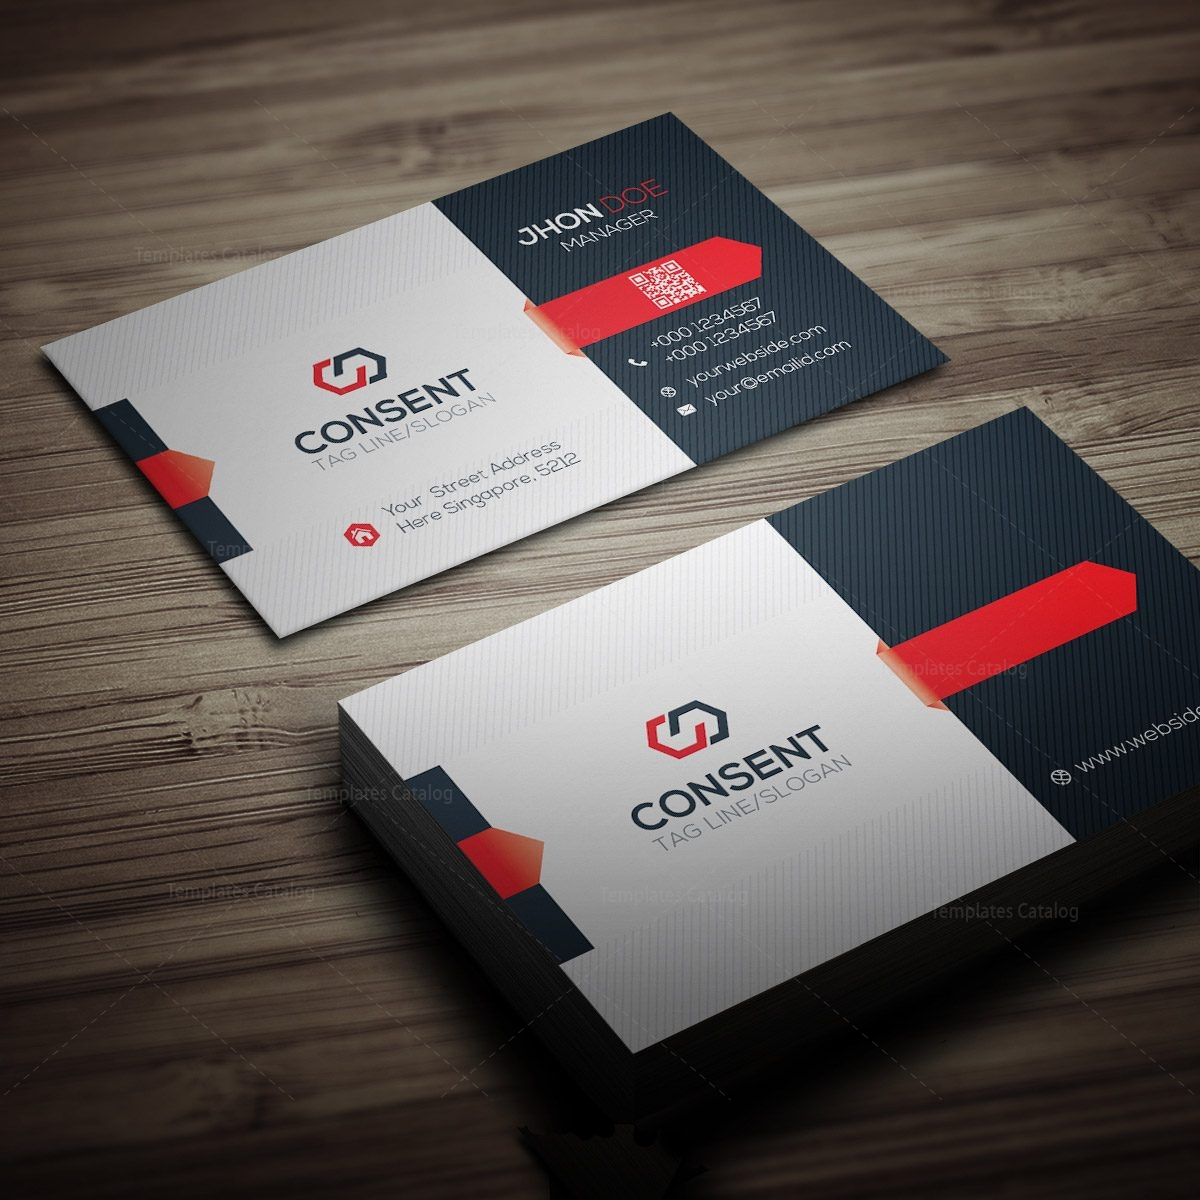 Consent Business Card Template 000275 - Template Catalog